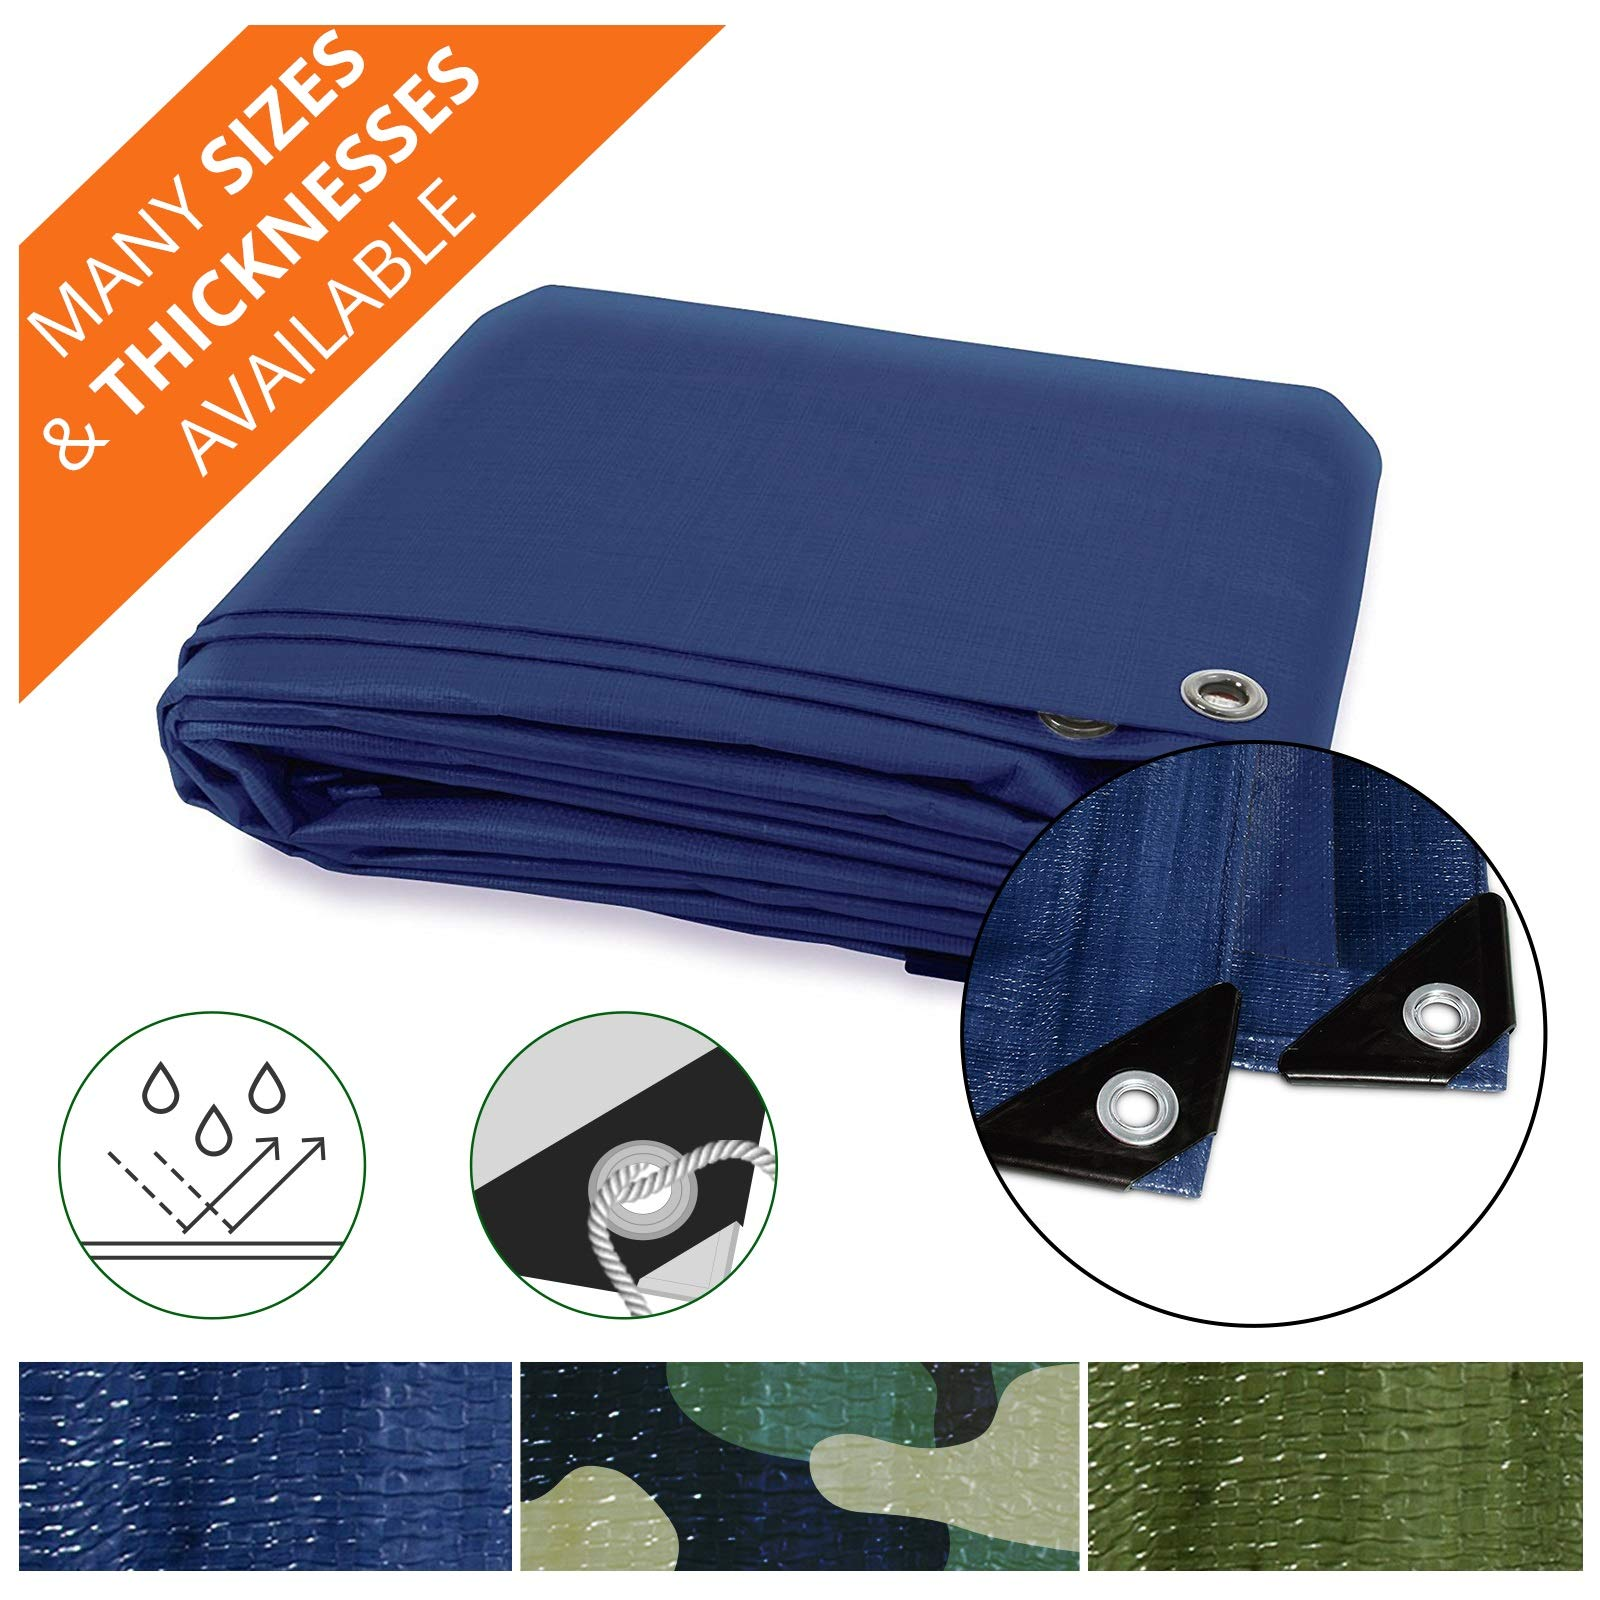 Heavy Duty Tarps   Waterproof Ground Tent Trailer Cover   Multilayered Tarpaulin in Many Sizes and Thicknesses   6 Mil - Blue - 10' x 12'